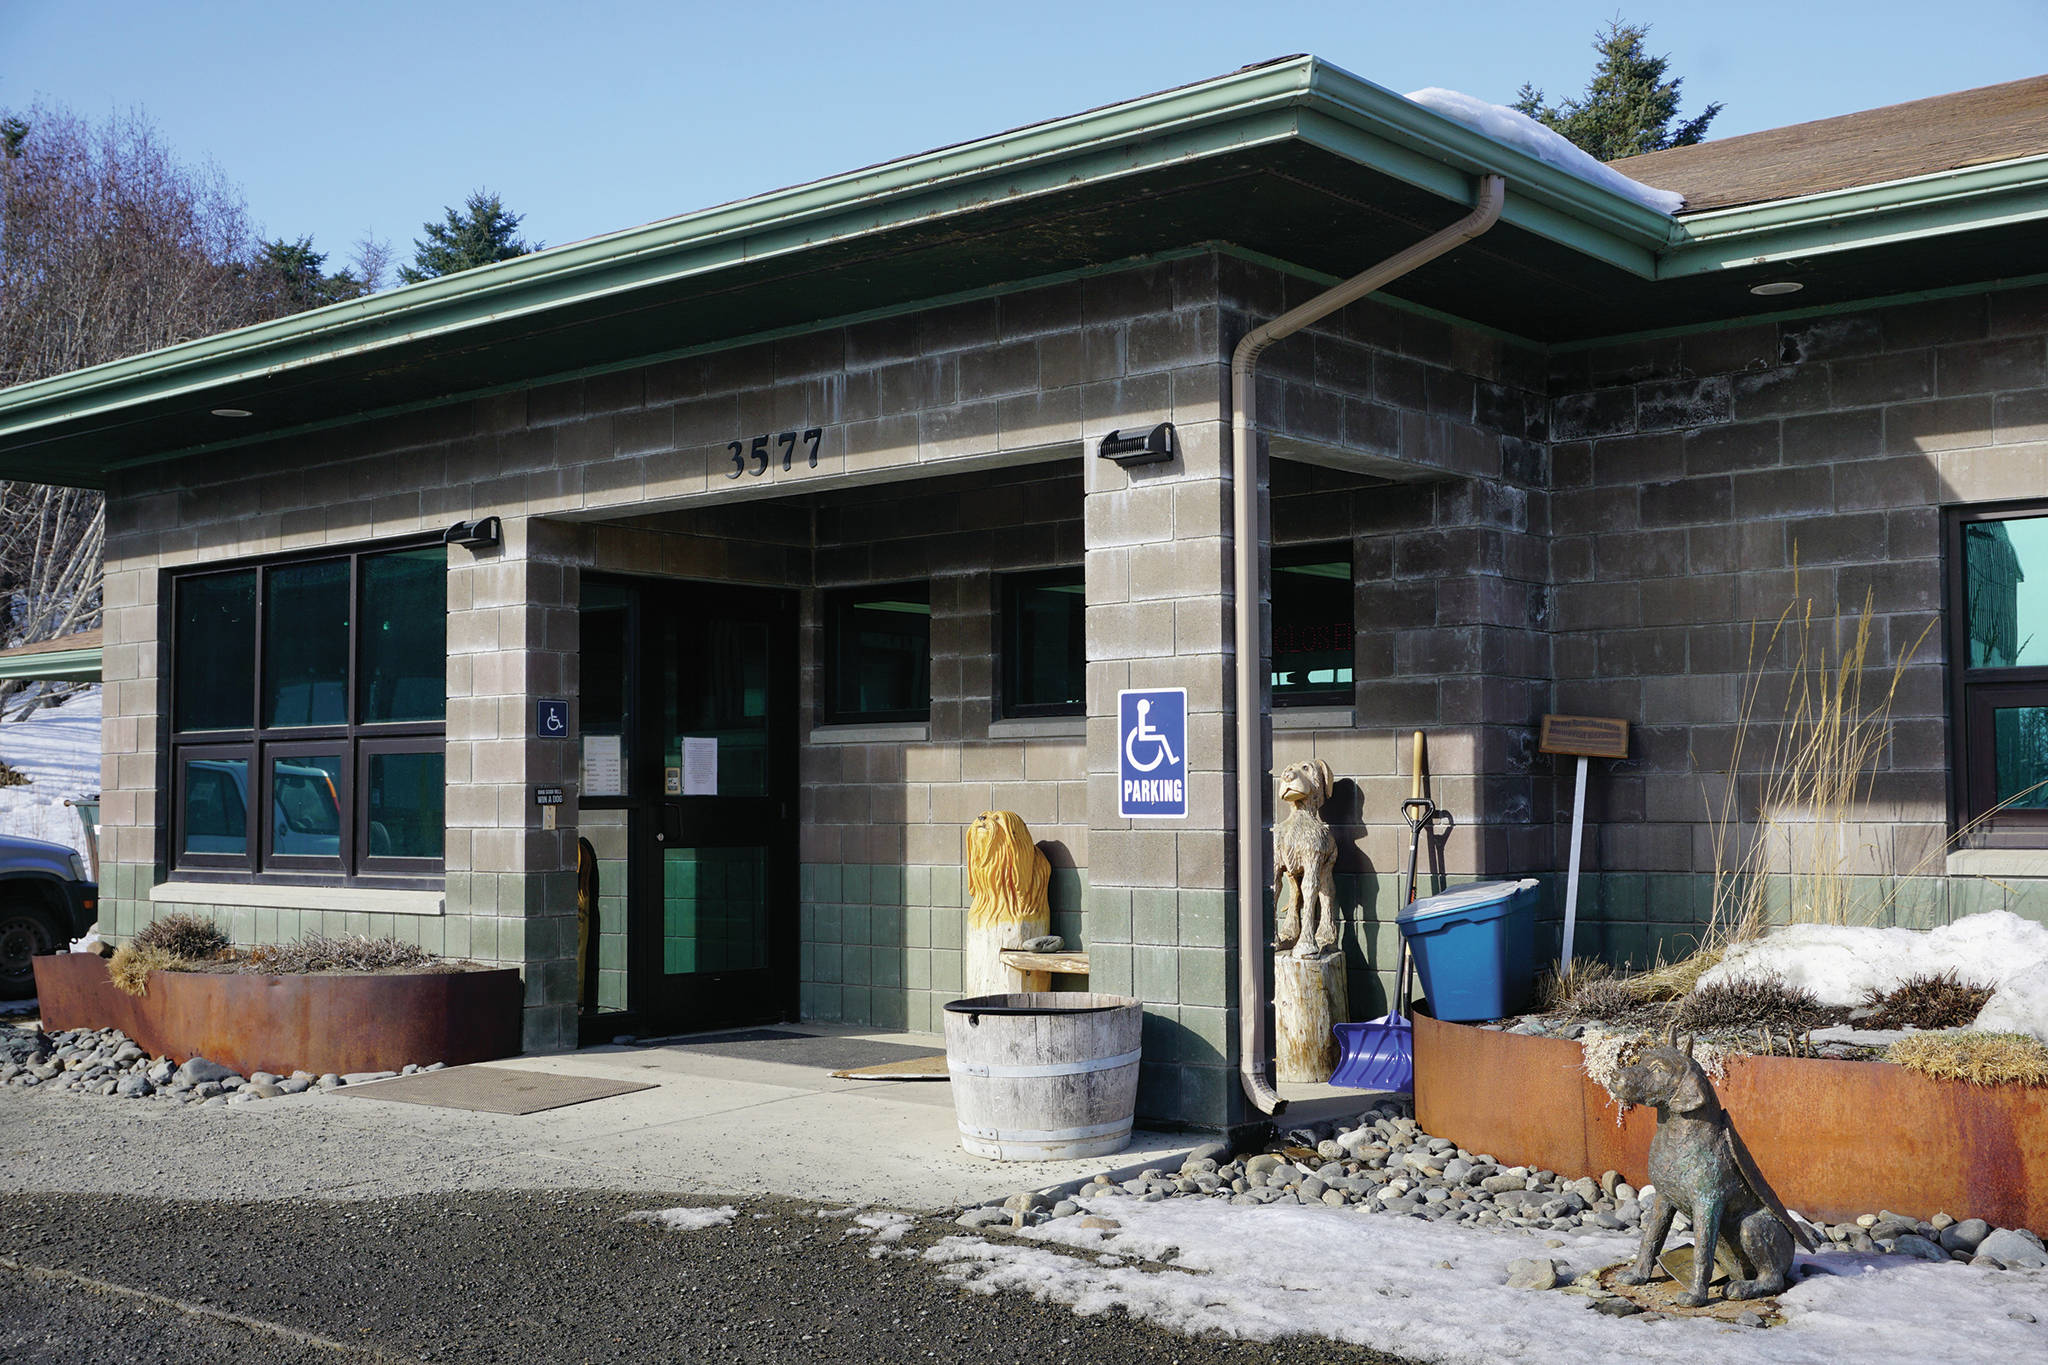 The Homer Animal Shelter on March 16, 2020, in Homer, Alaska. (Photo by Michael Armstrong/Homer News)